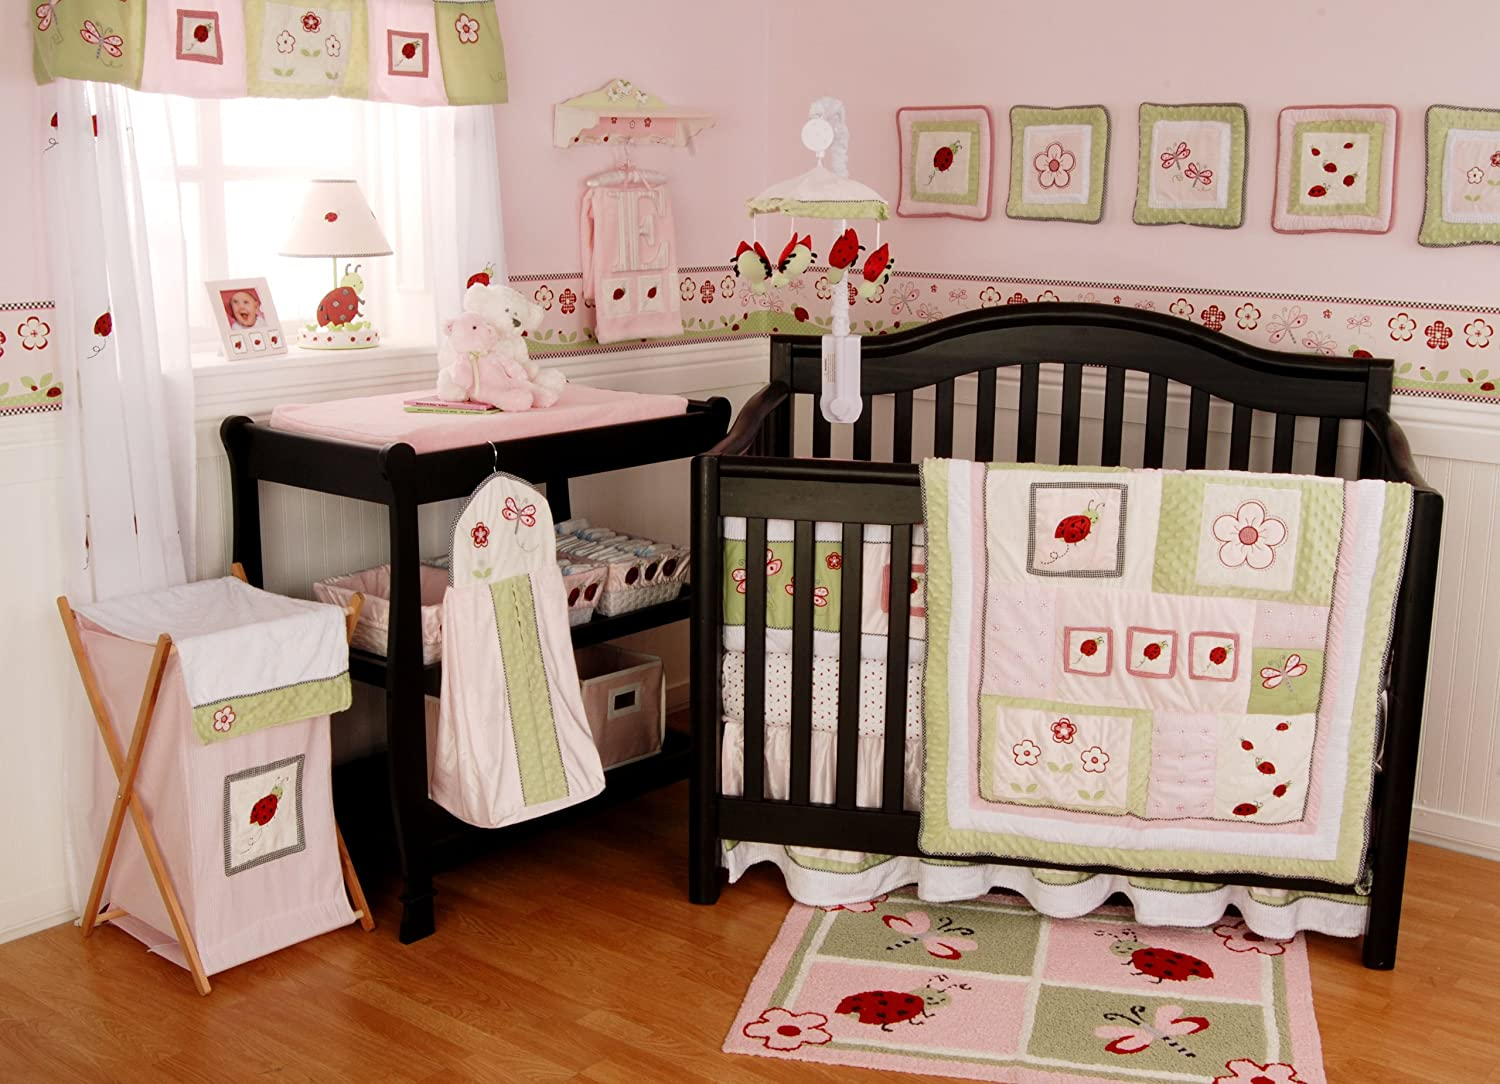 Kidsline Ladybug Baby Bedding And Decor Baby Bedding And